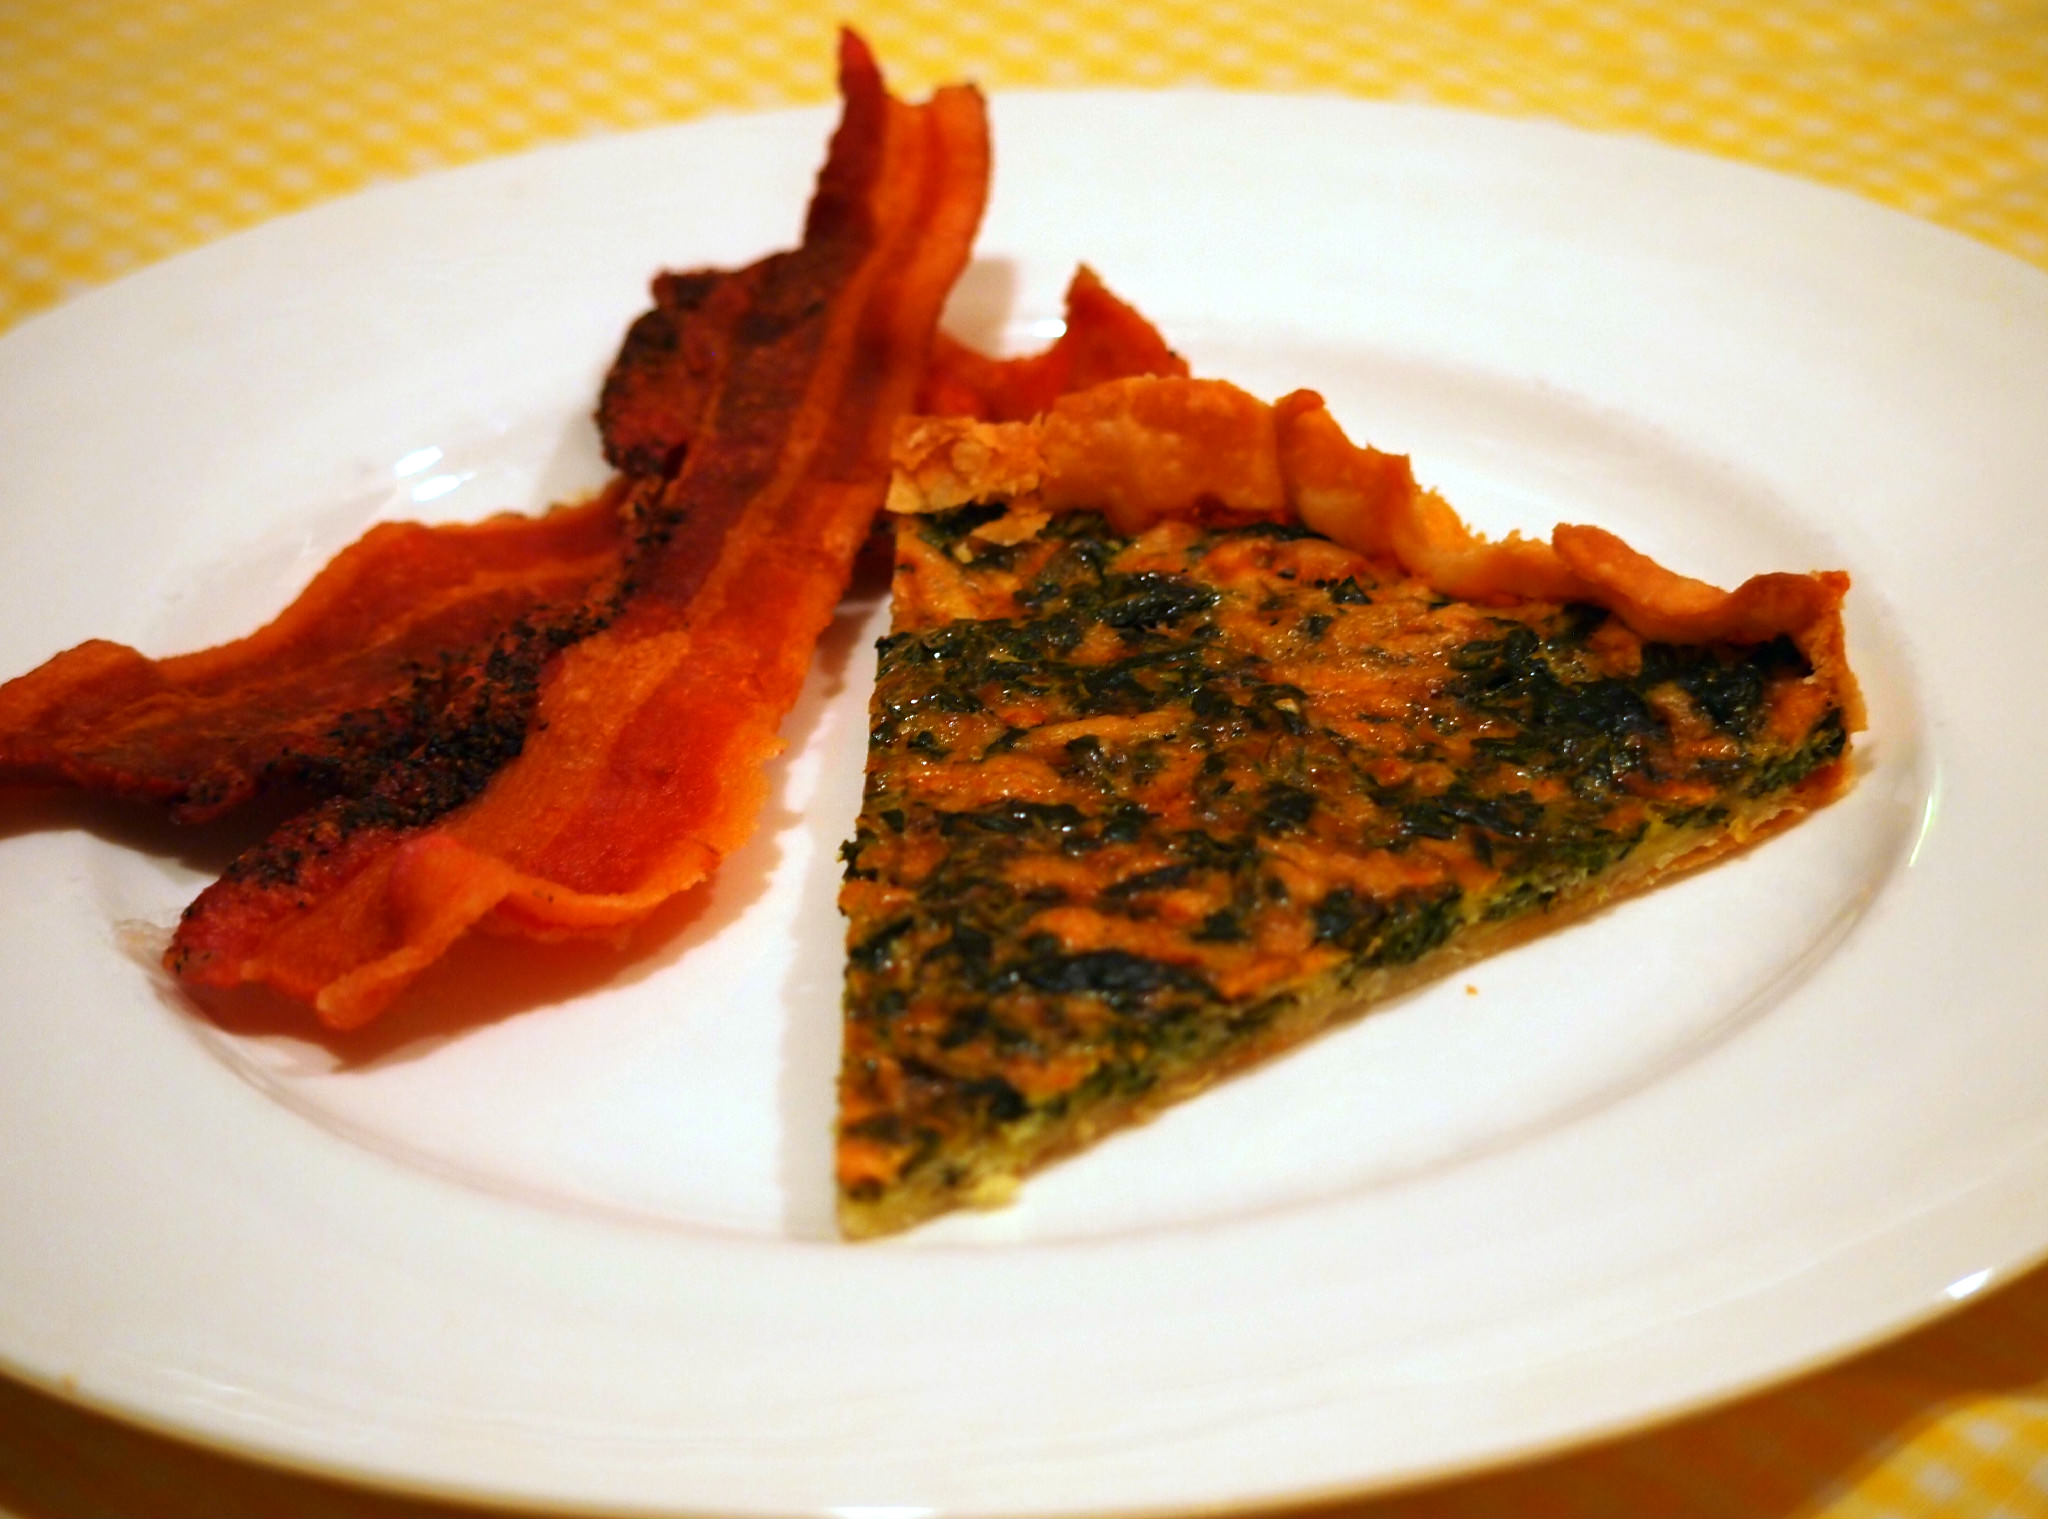 Slice of simple spinach tart